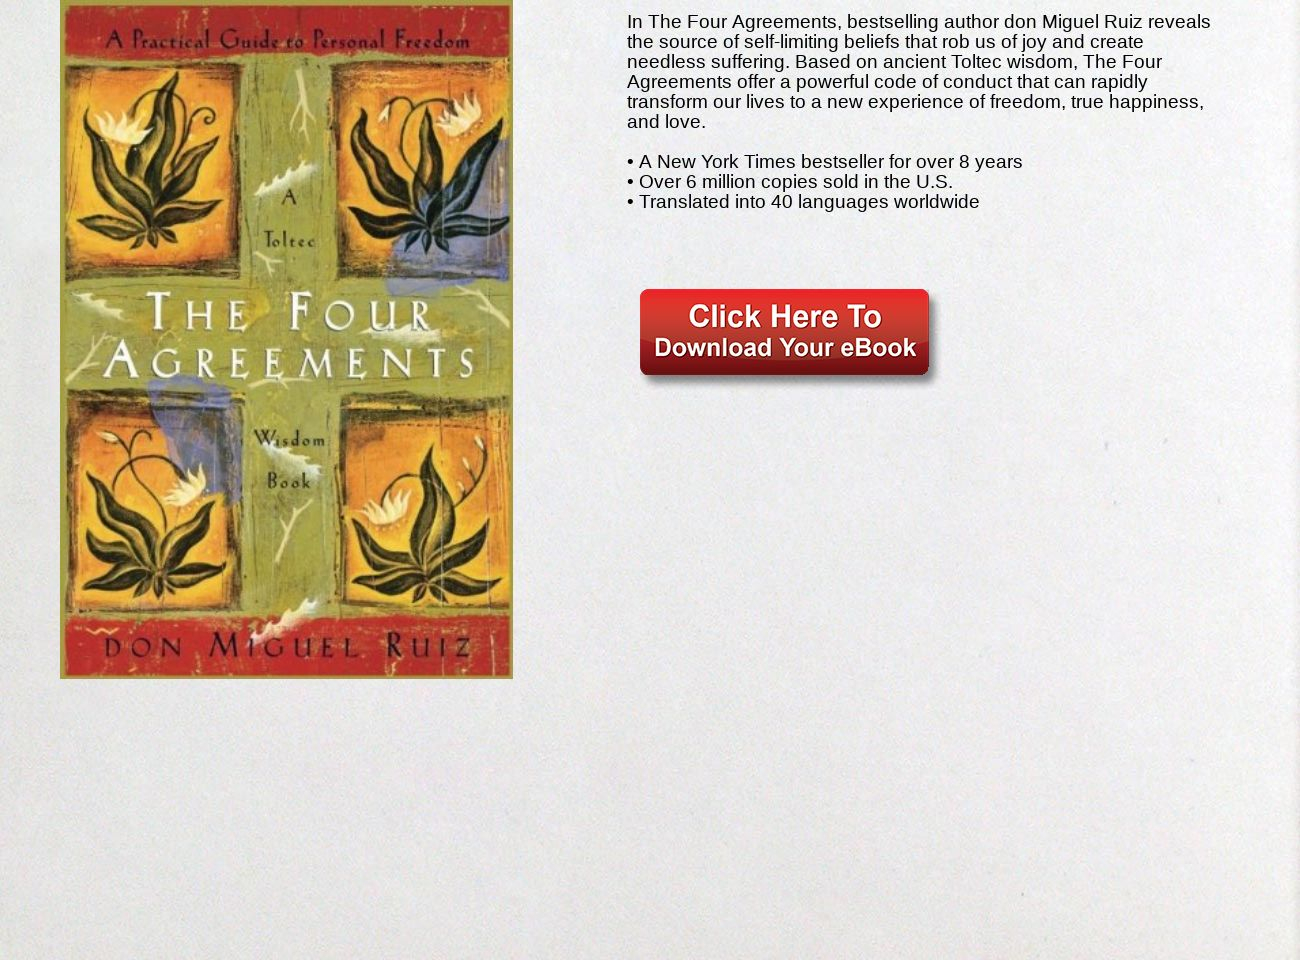 Four Agreements Book Free Download Download Ebook The Four Agreements A Practical Guide To Personal